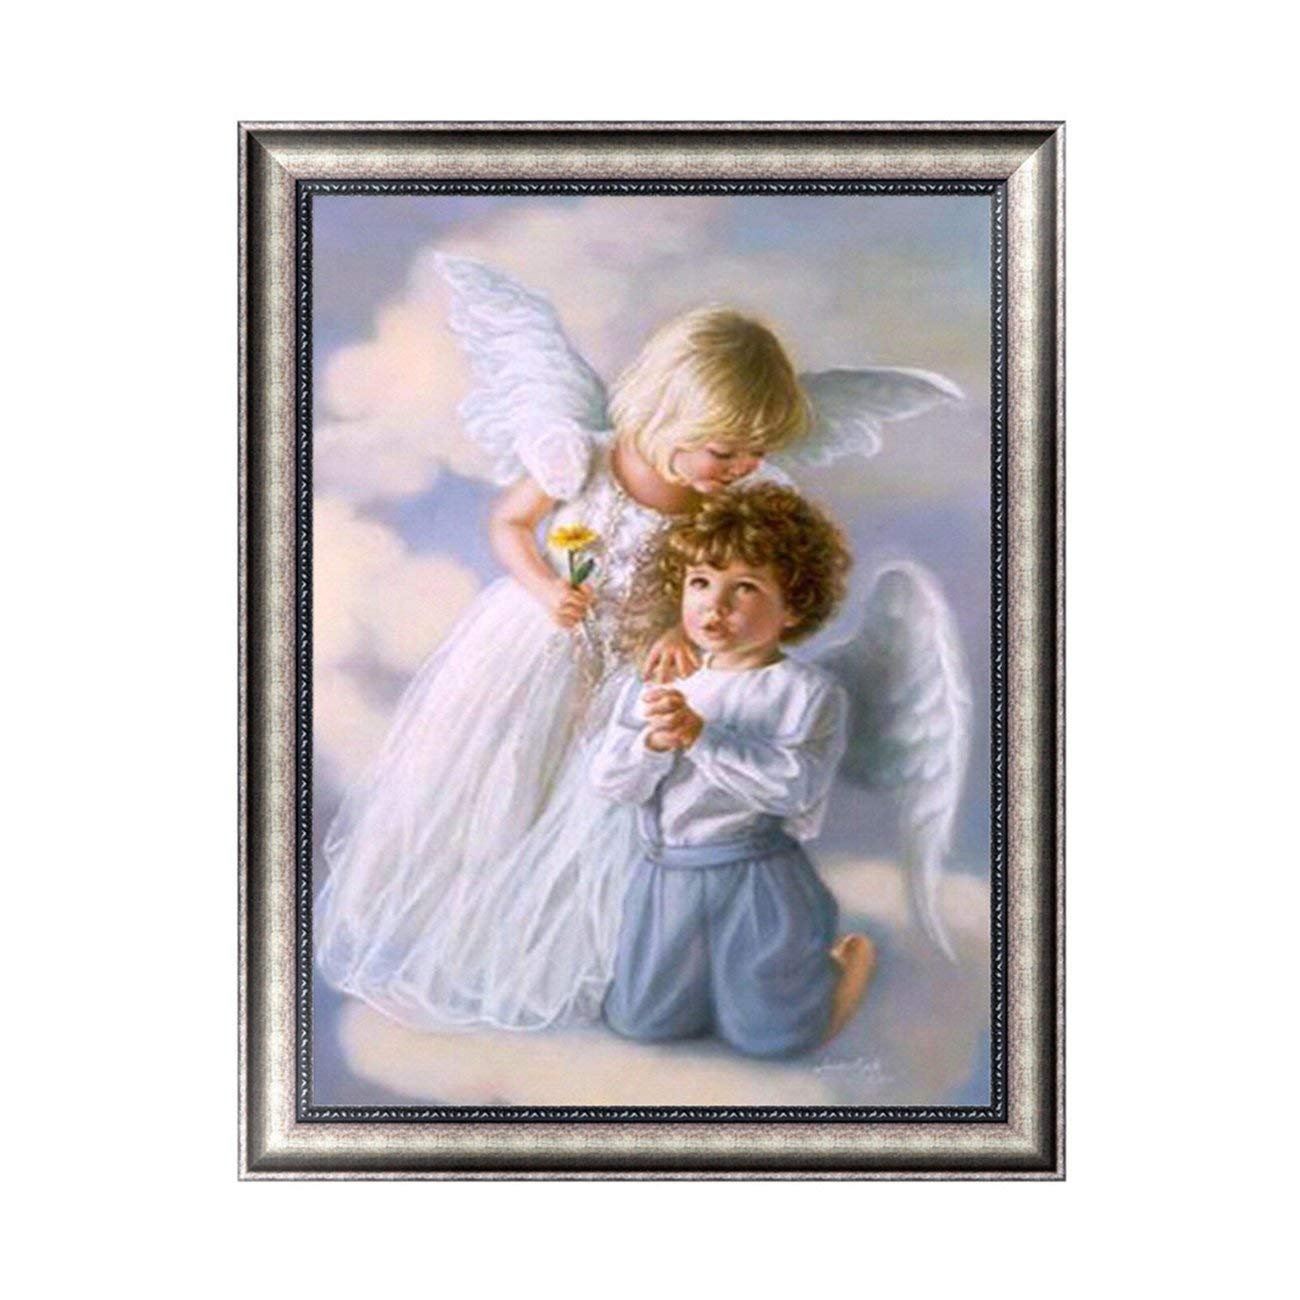 Elviray DIY 5D Diamond Painting Angel Pattern Cross Stitch Craft Embroidery Painting Fashion Wall Decor for Home Room